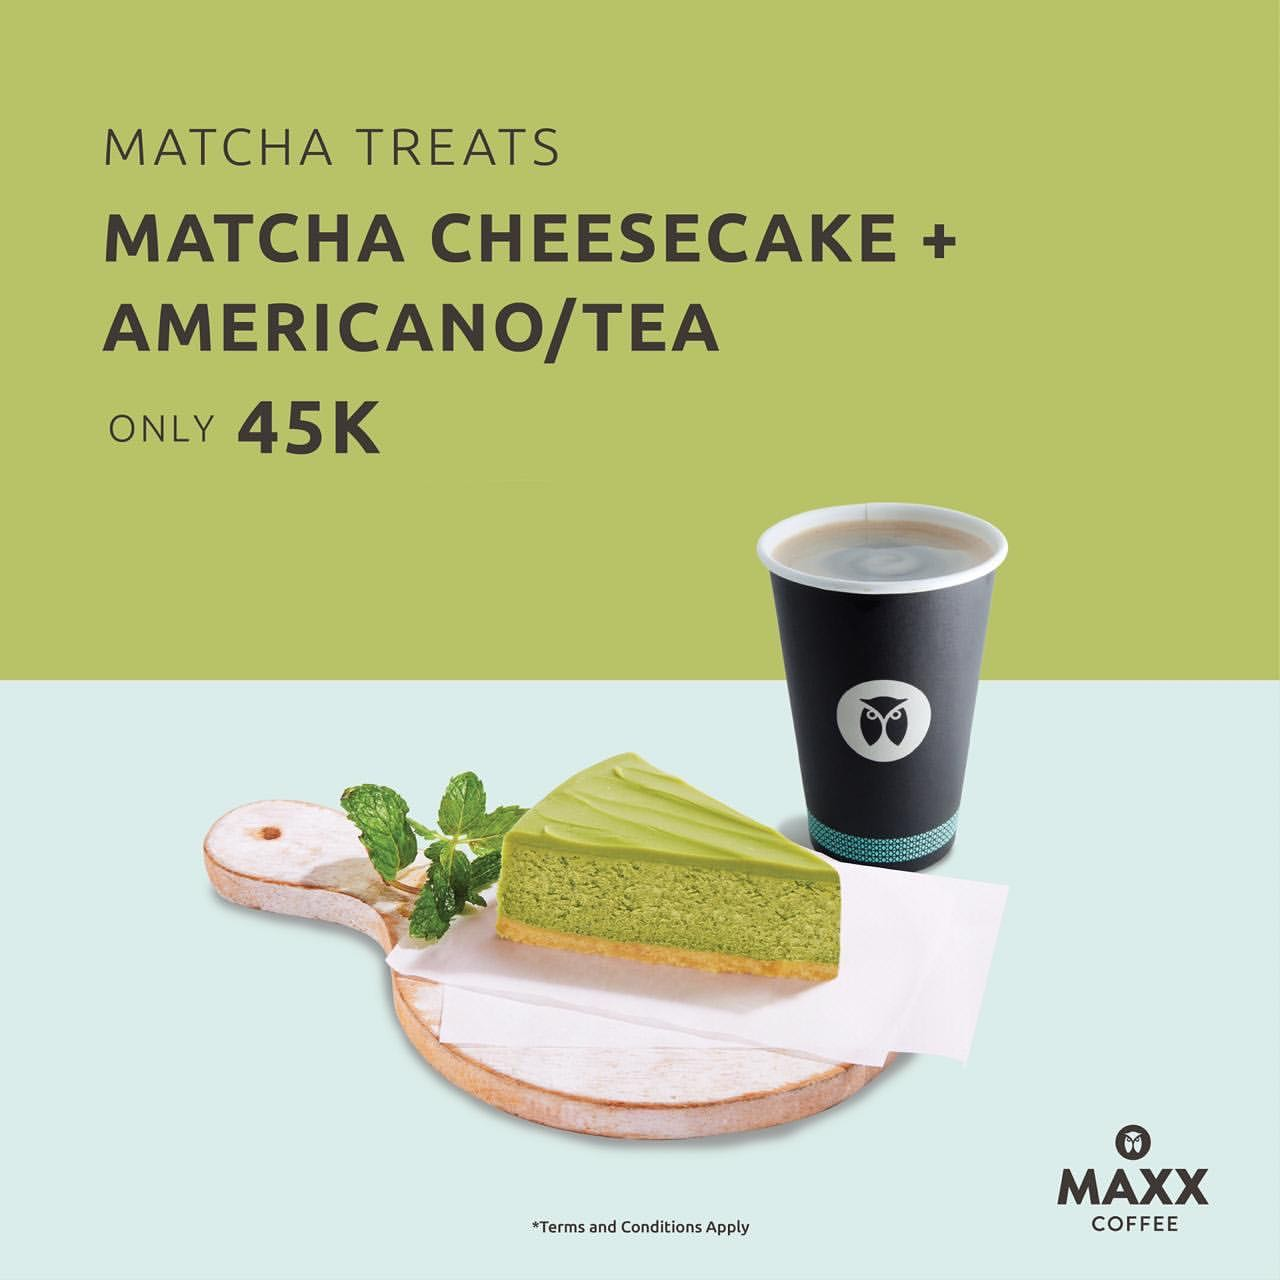 MAXX COFFEE Promo Matcha Cheesecake + Americano per Tea only 45 K*